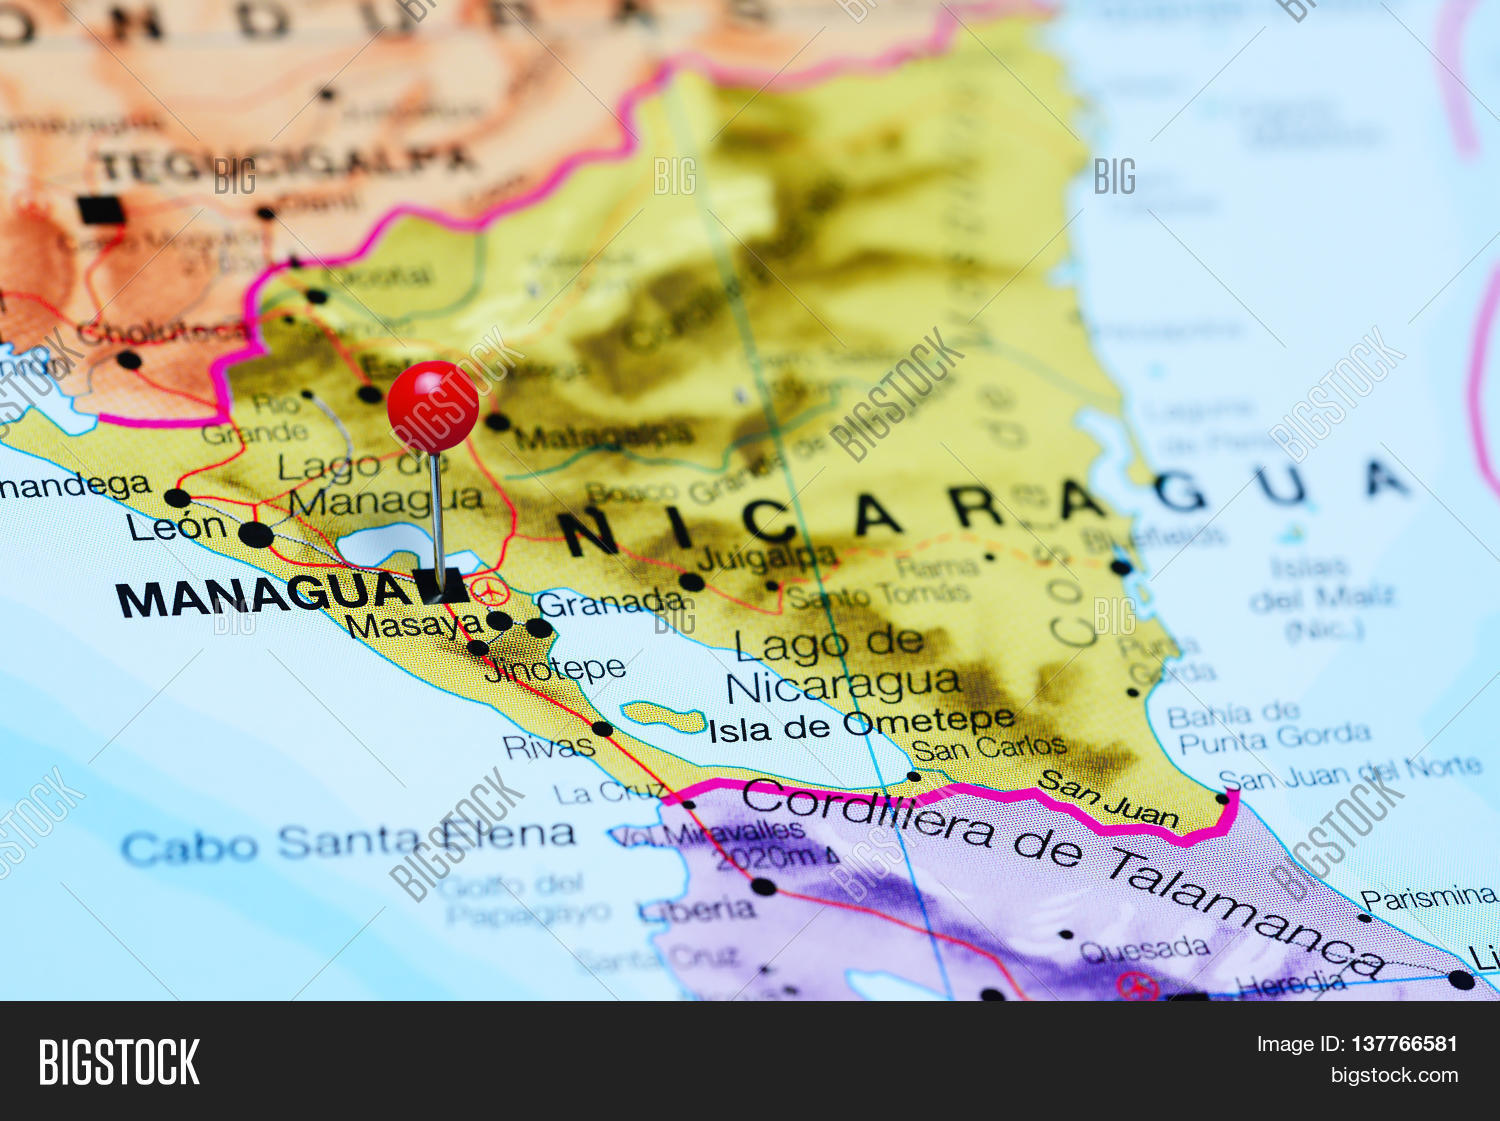 Managua Pinned On Map Image & Photo (Free Trial) | Bigstock